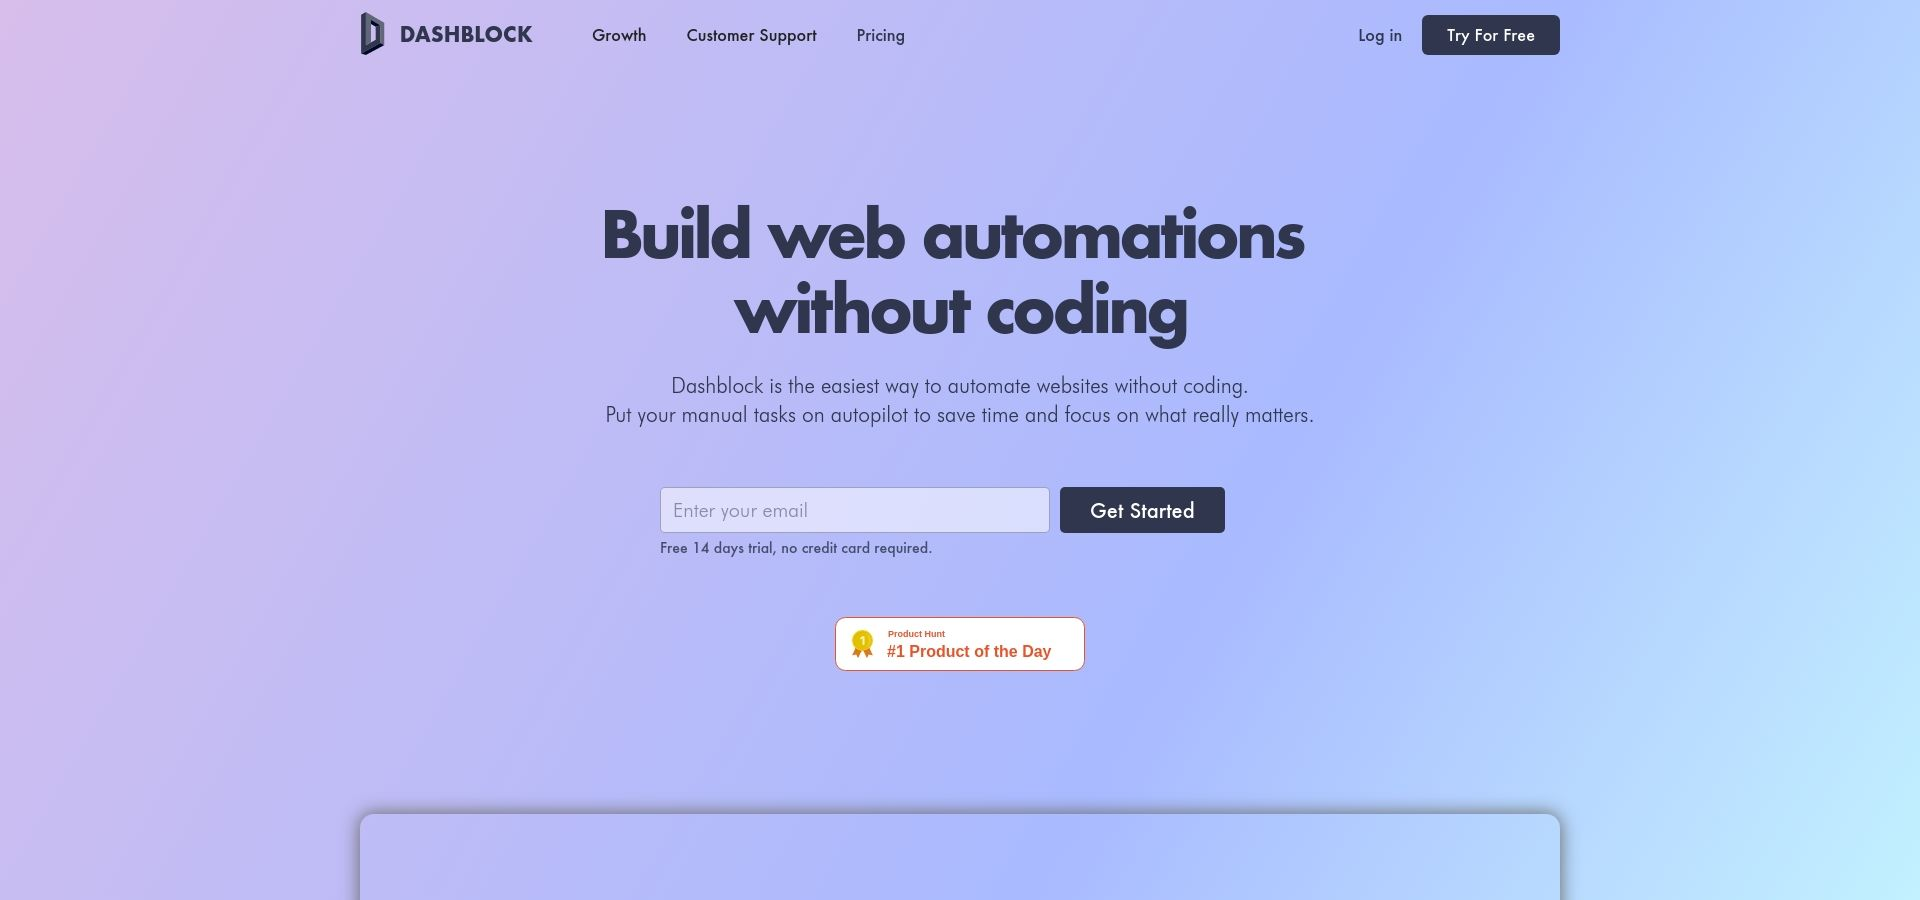 Dashblock - Build web automations without coding